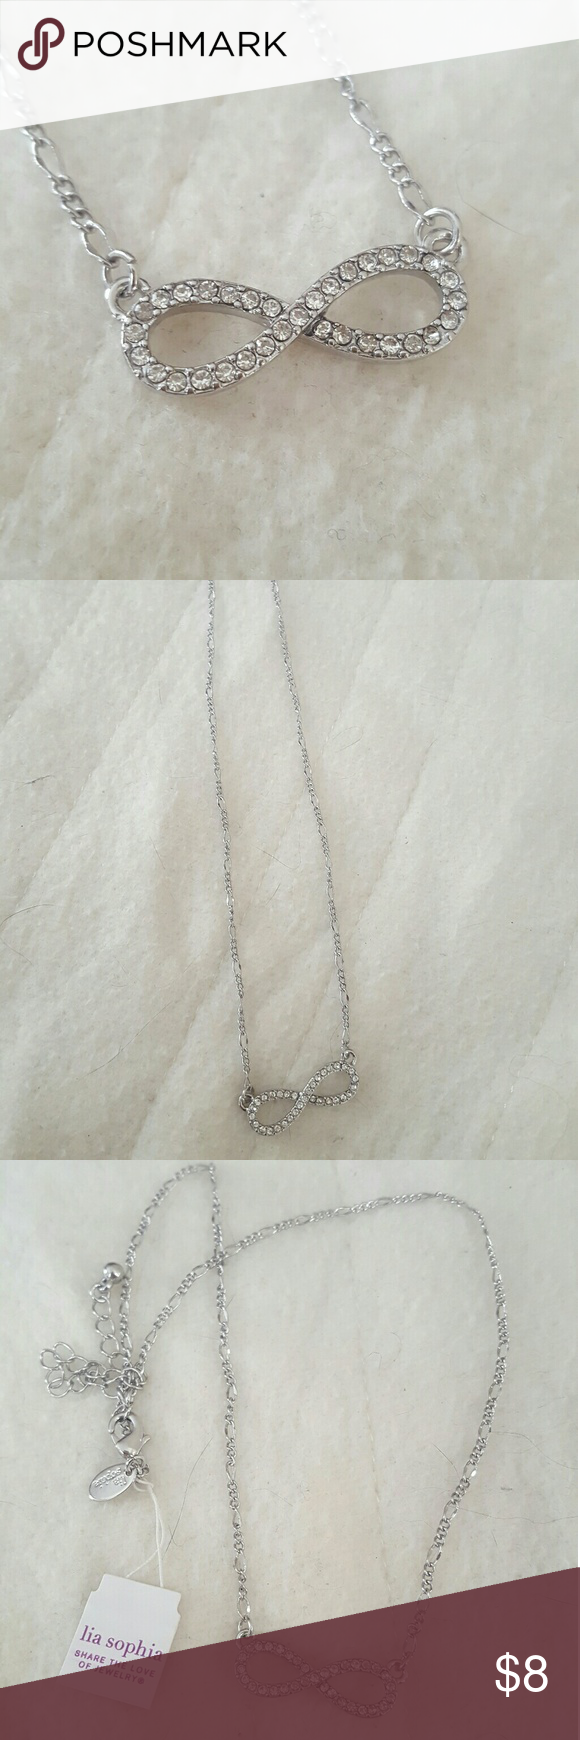 Infinity necklace Silver infinity necklace. Adjustable. Lia Sophia Jewelry Necklaces